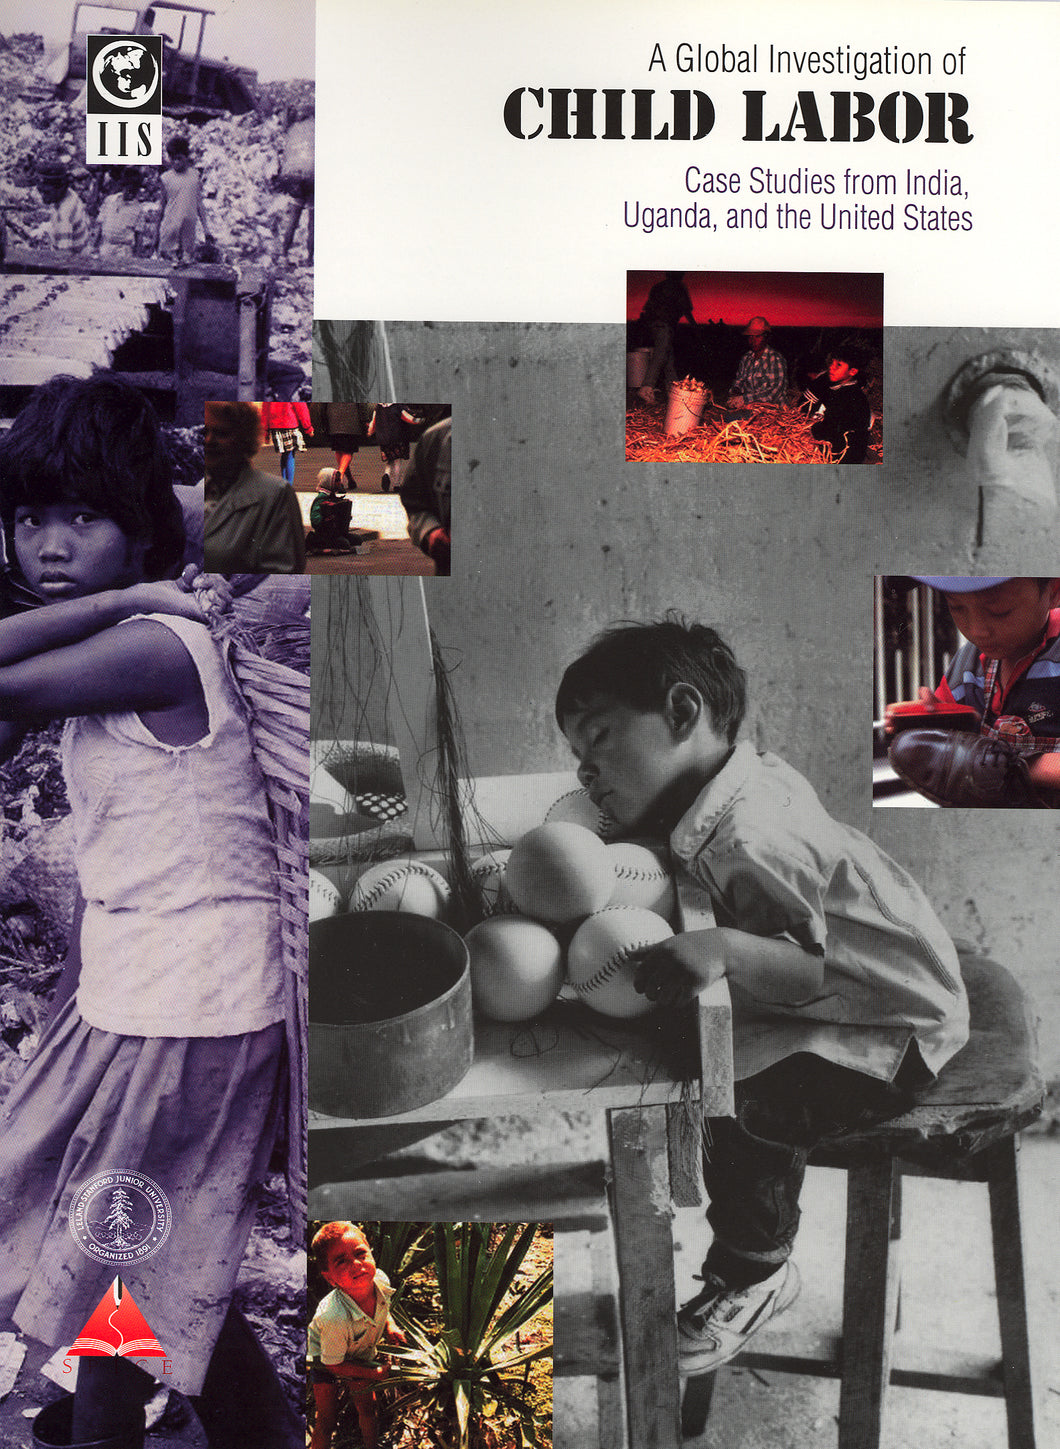 Global Investigation of Child Labor: Case Studies from India, Uganda, and the United States